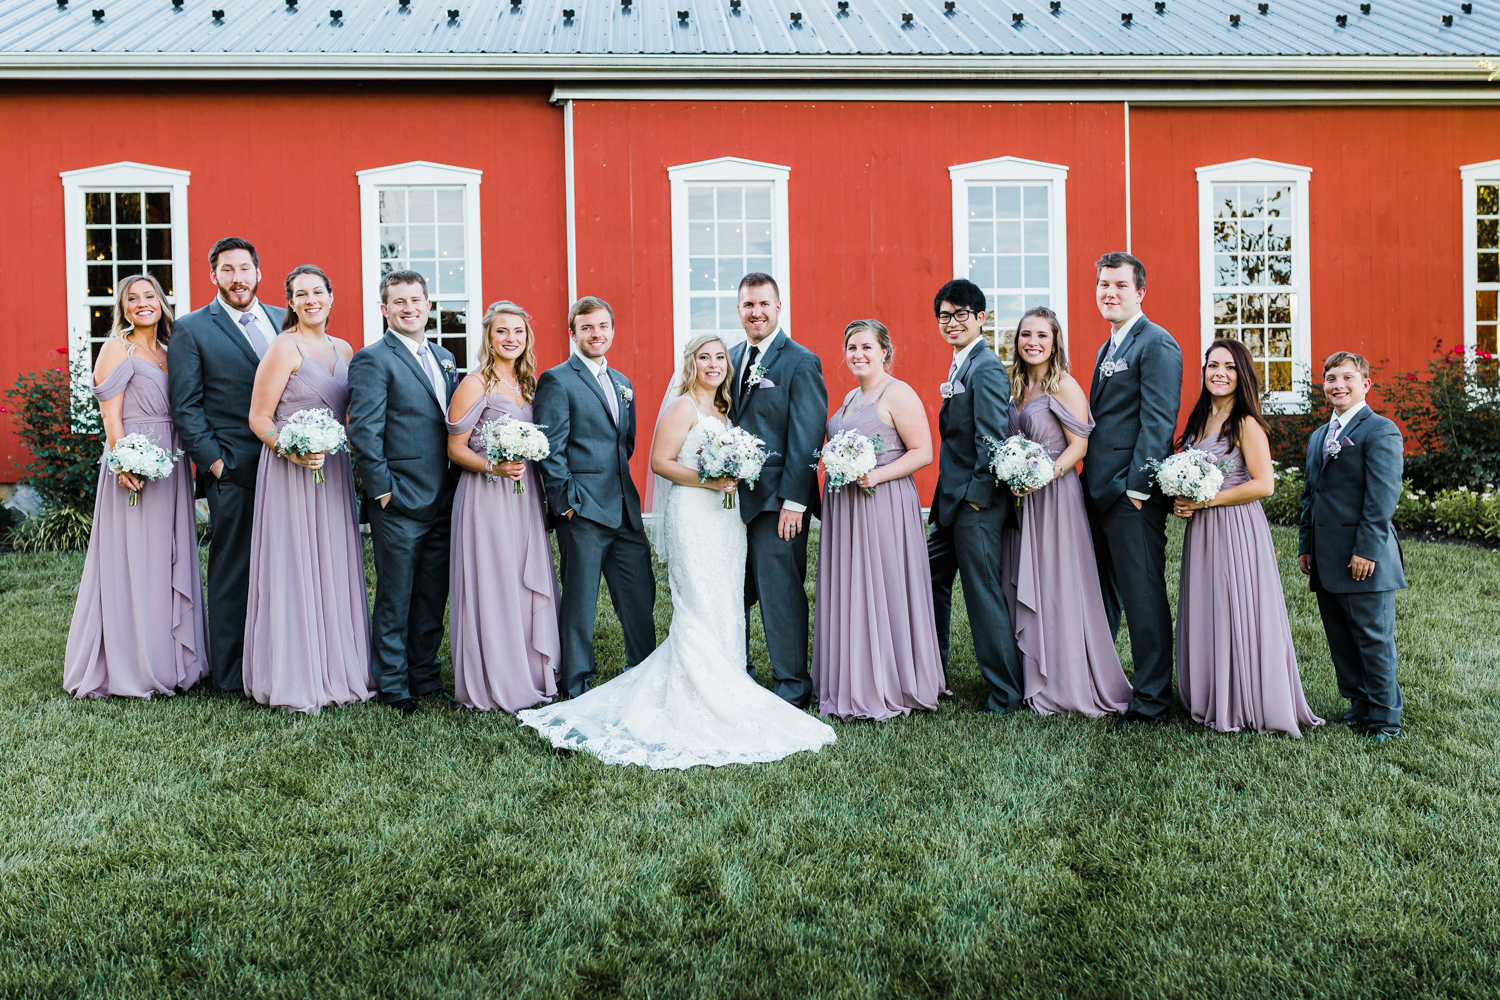 Traditional group pose with bridal party - MD best photo